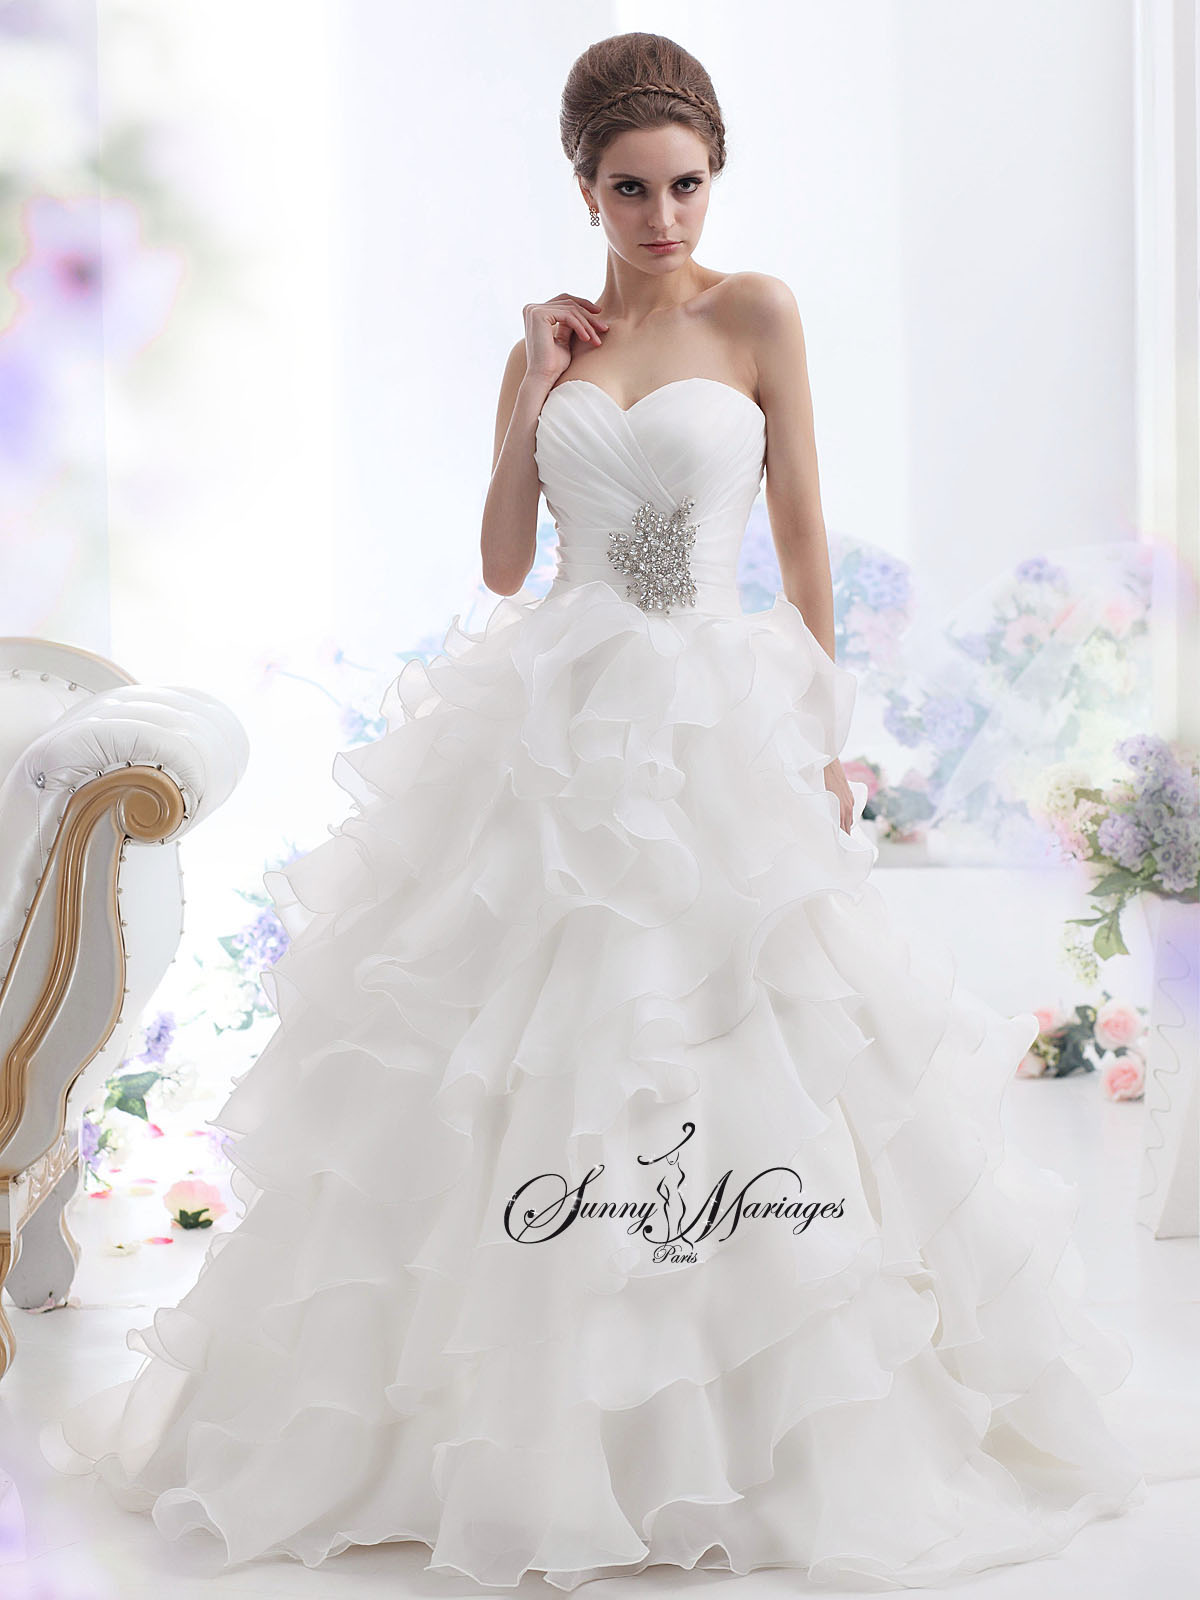 Robe de Mariée - image #3067574 by marine21 on Favim.com